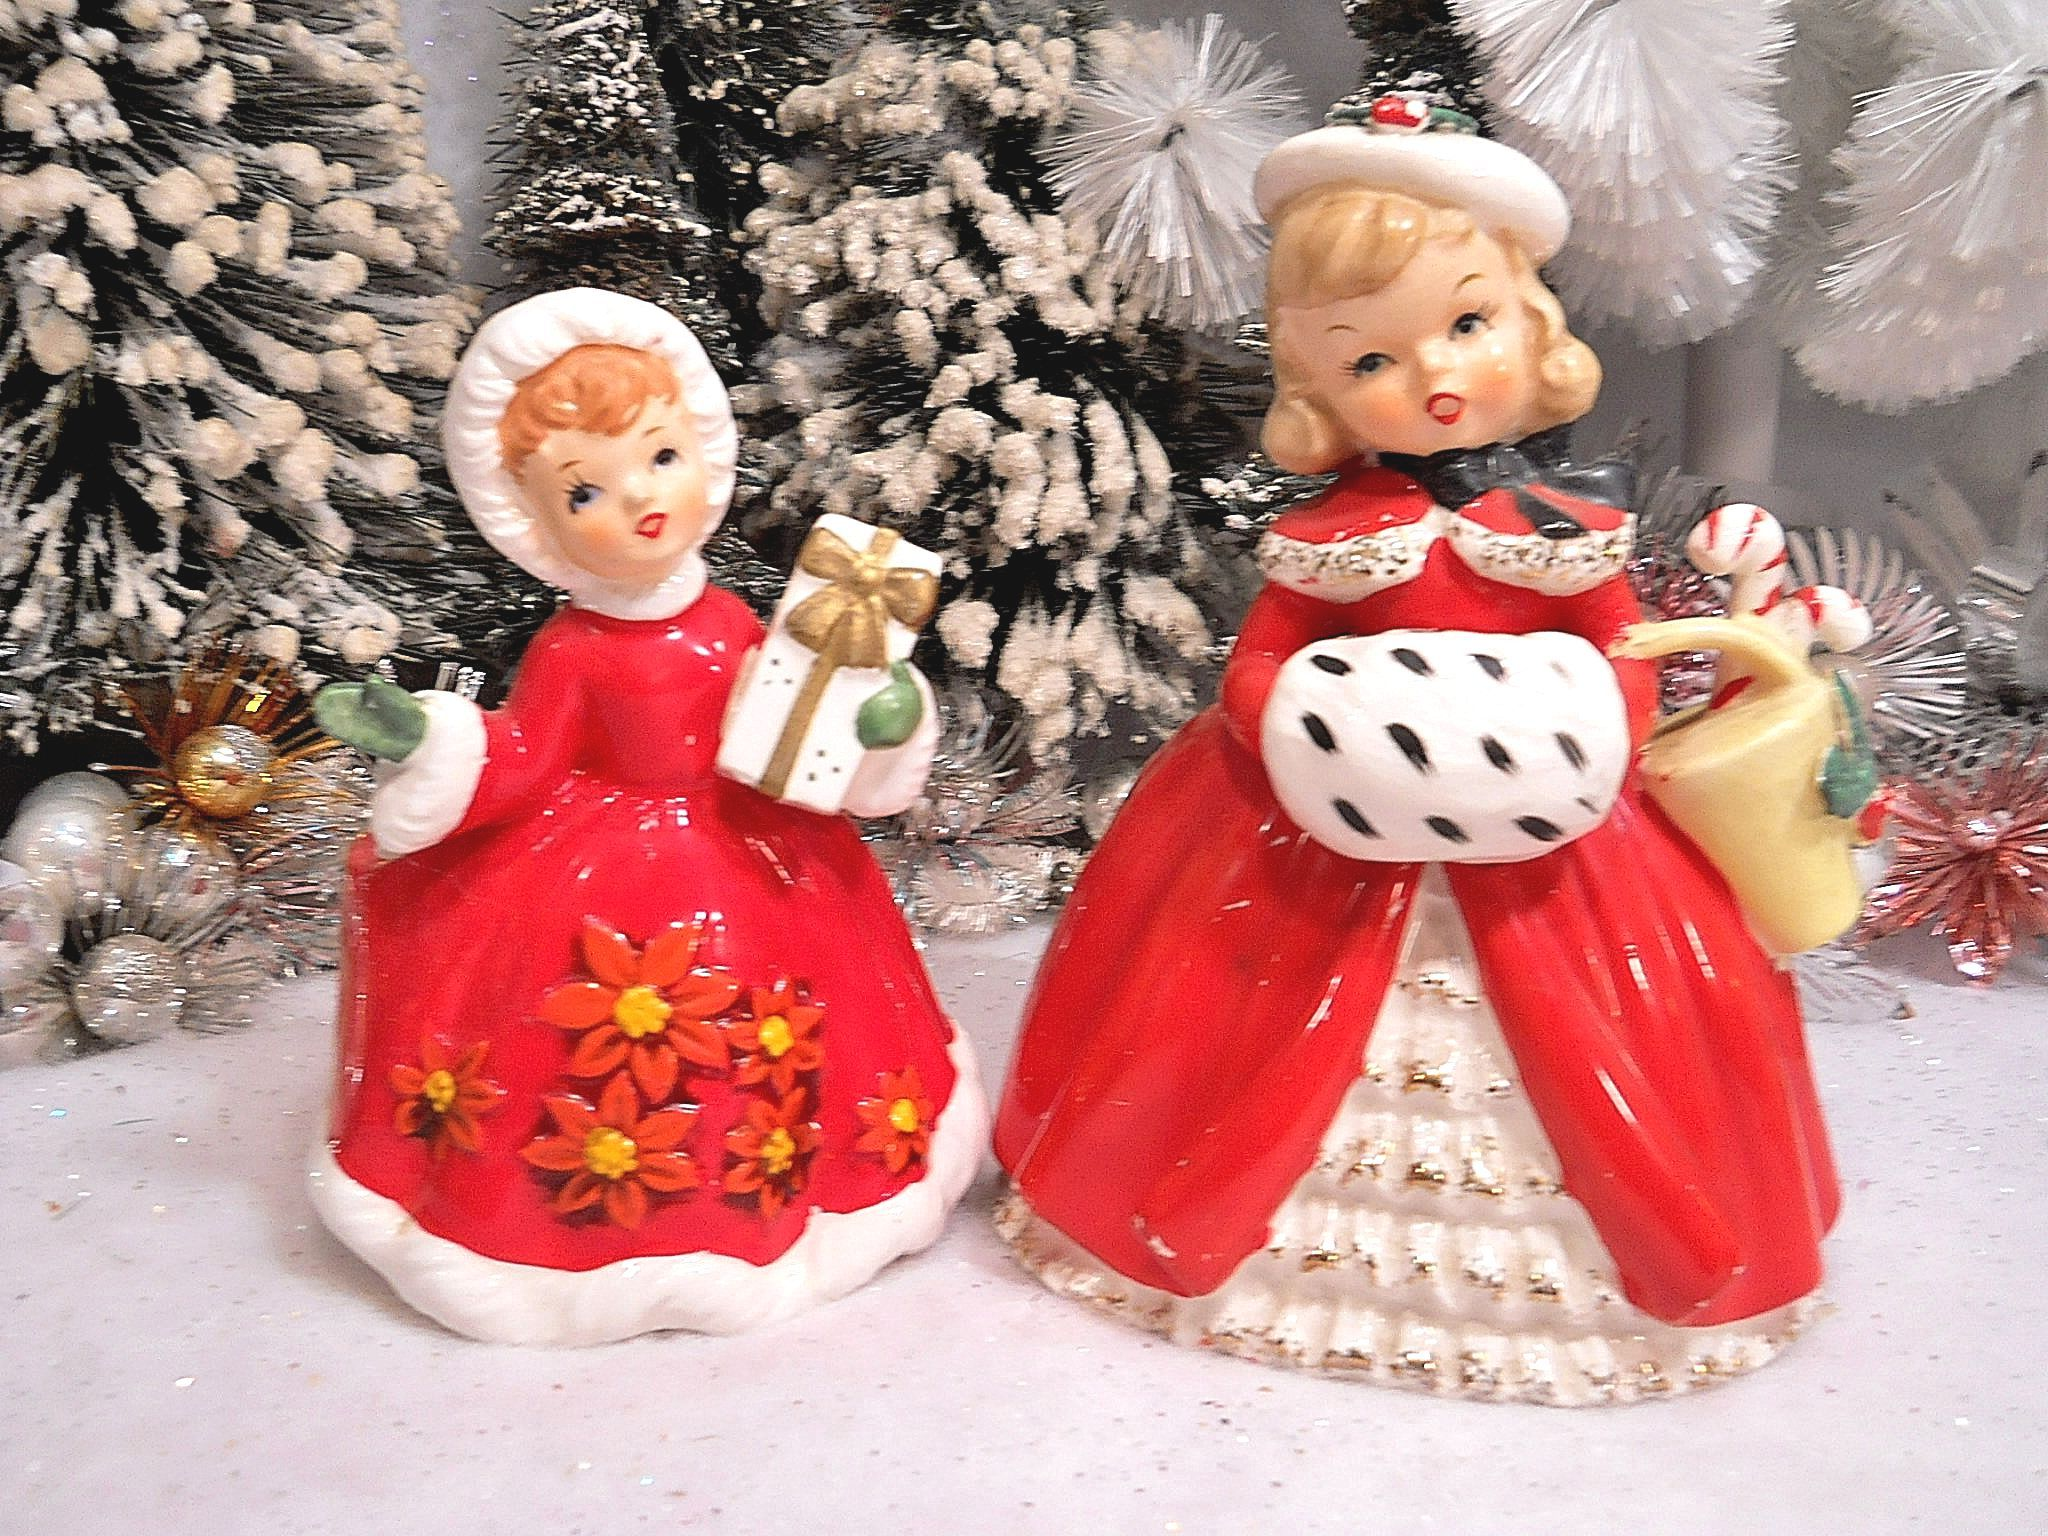 Vintage christmas decorations 1950s - 1950s Christmas Shopper Girls Ceramic Figurines